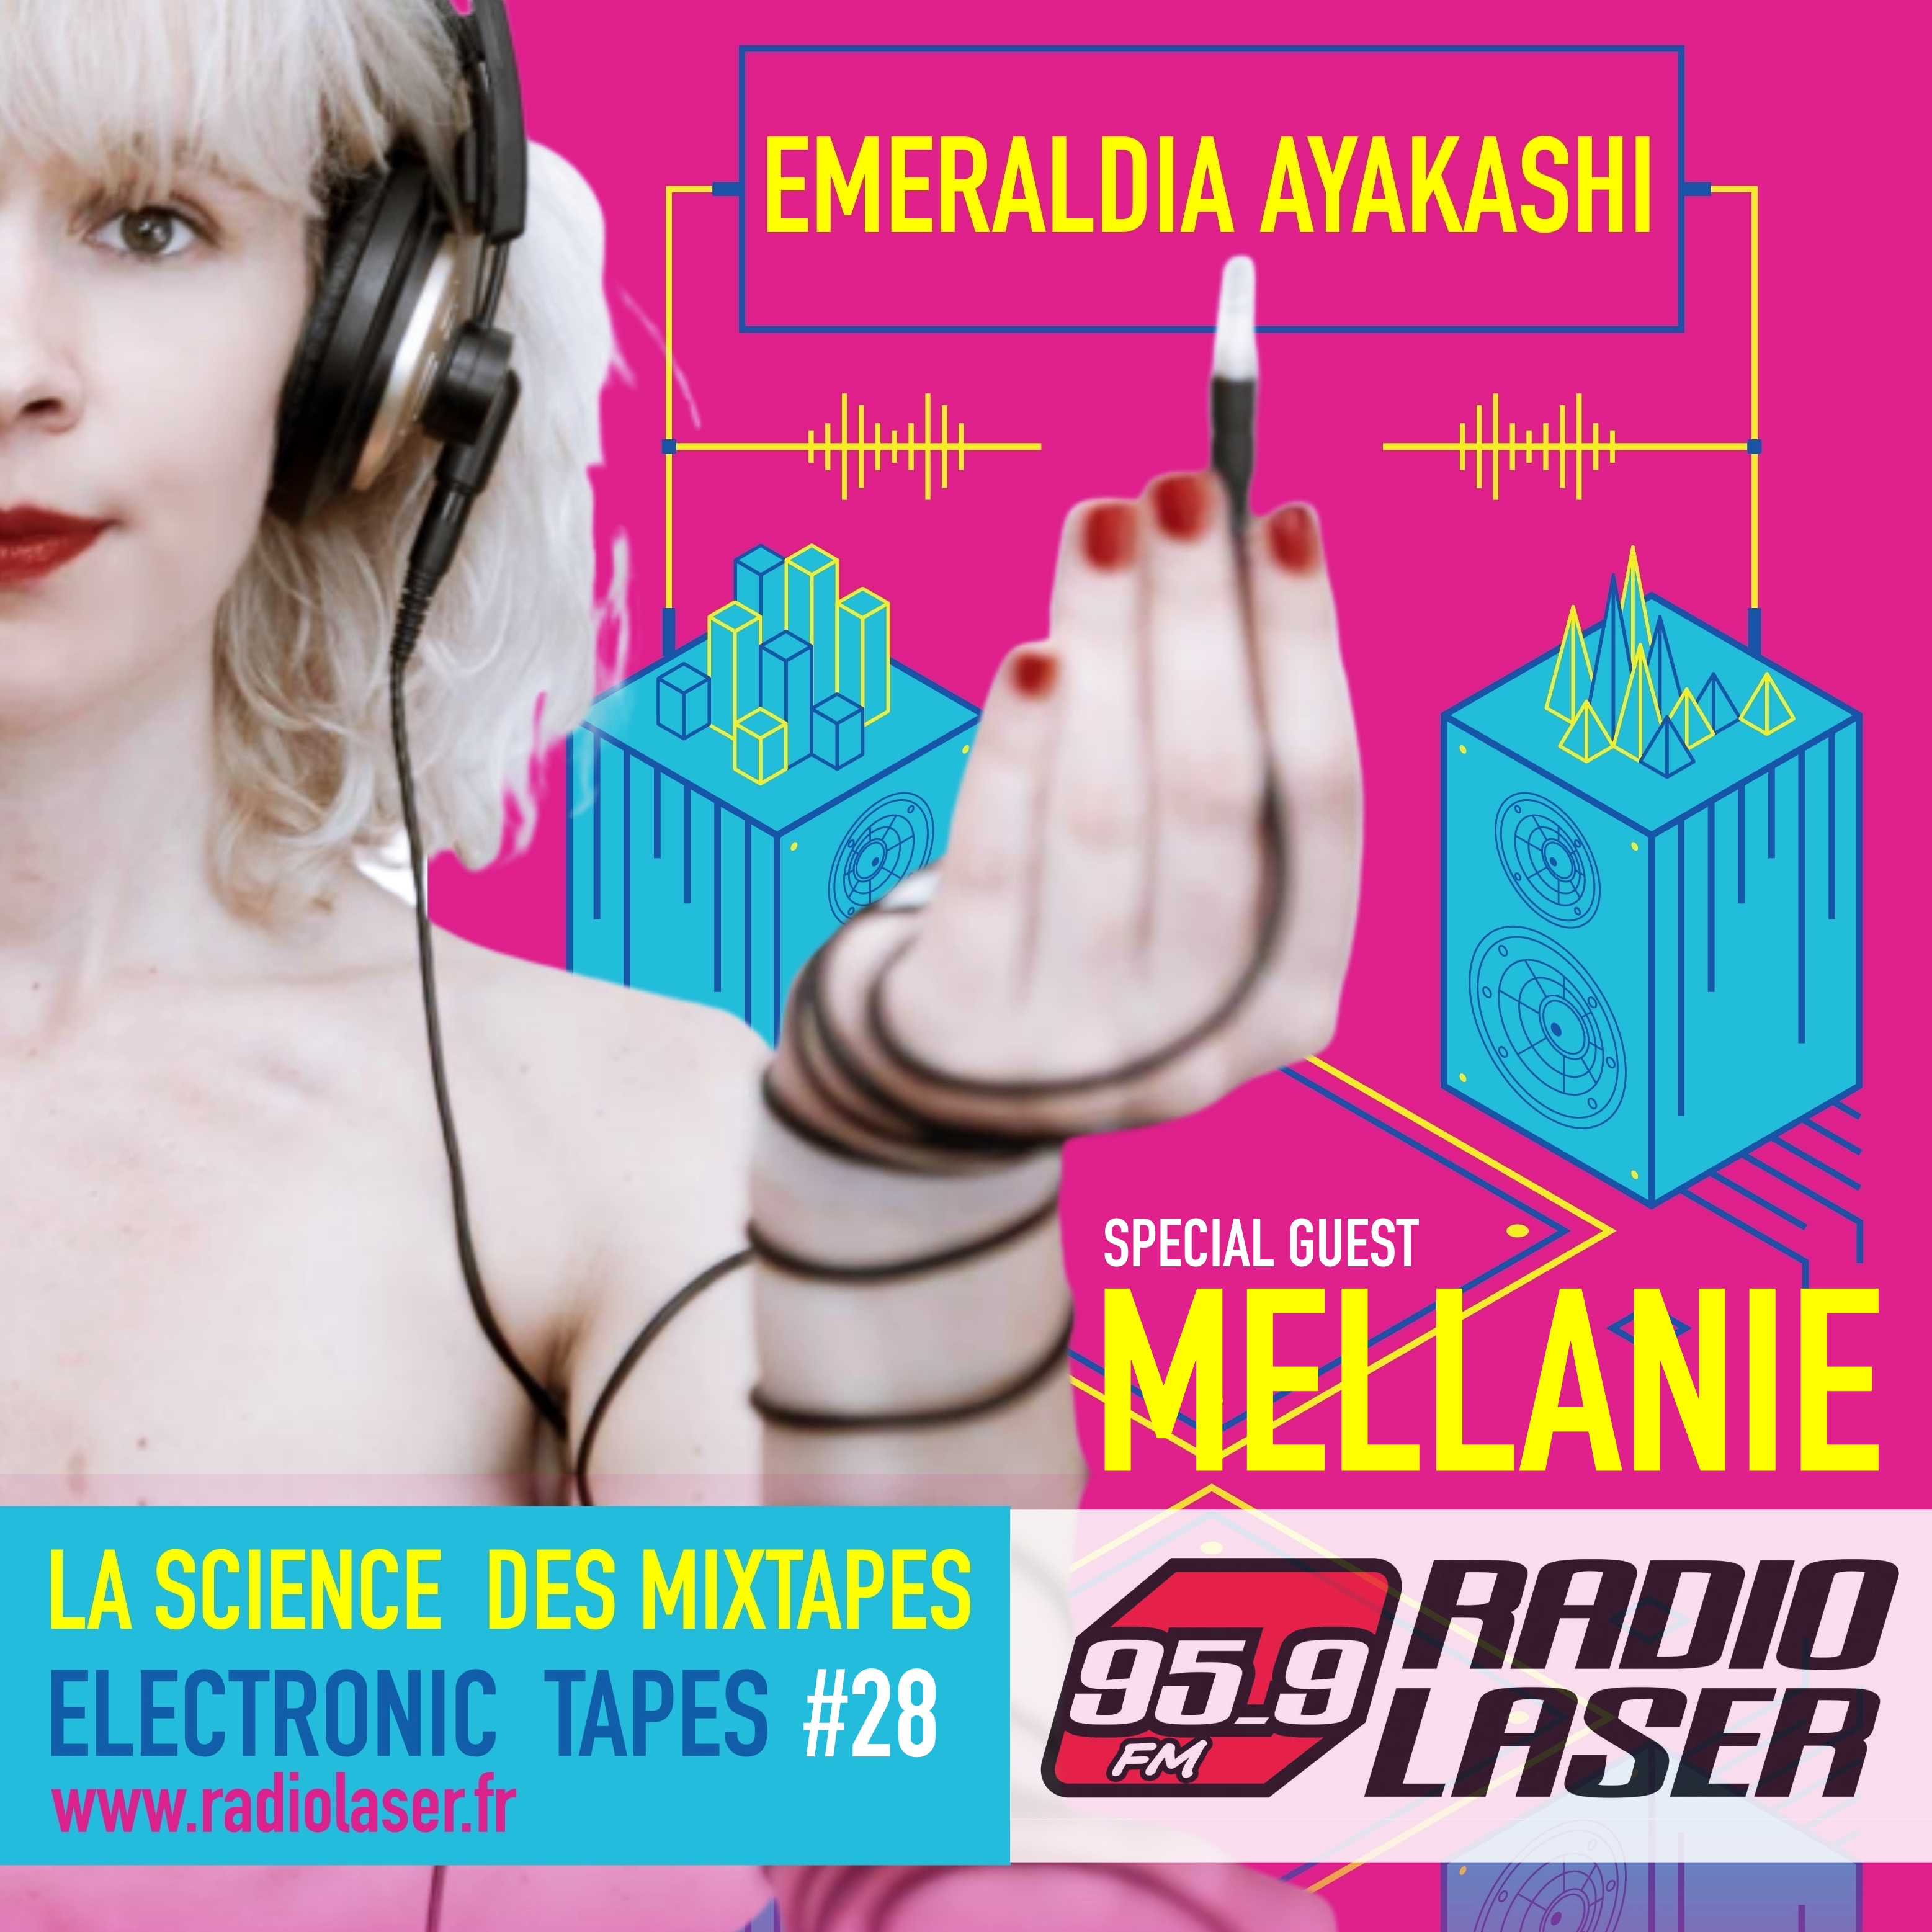 La Science des Mixtapes #28 mixée par Emeraldia Ayakashi